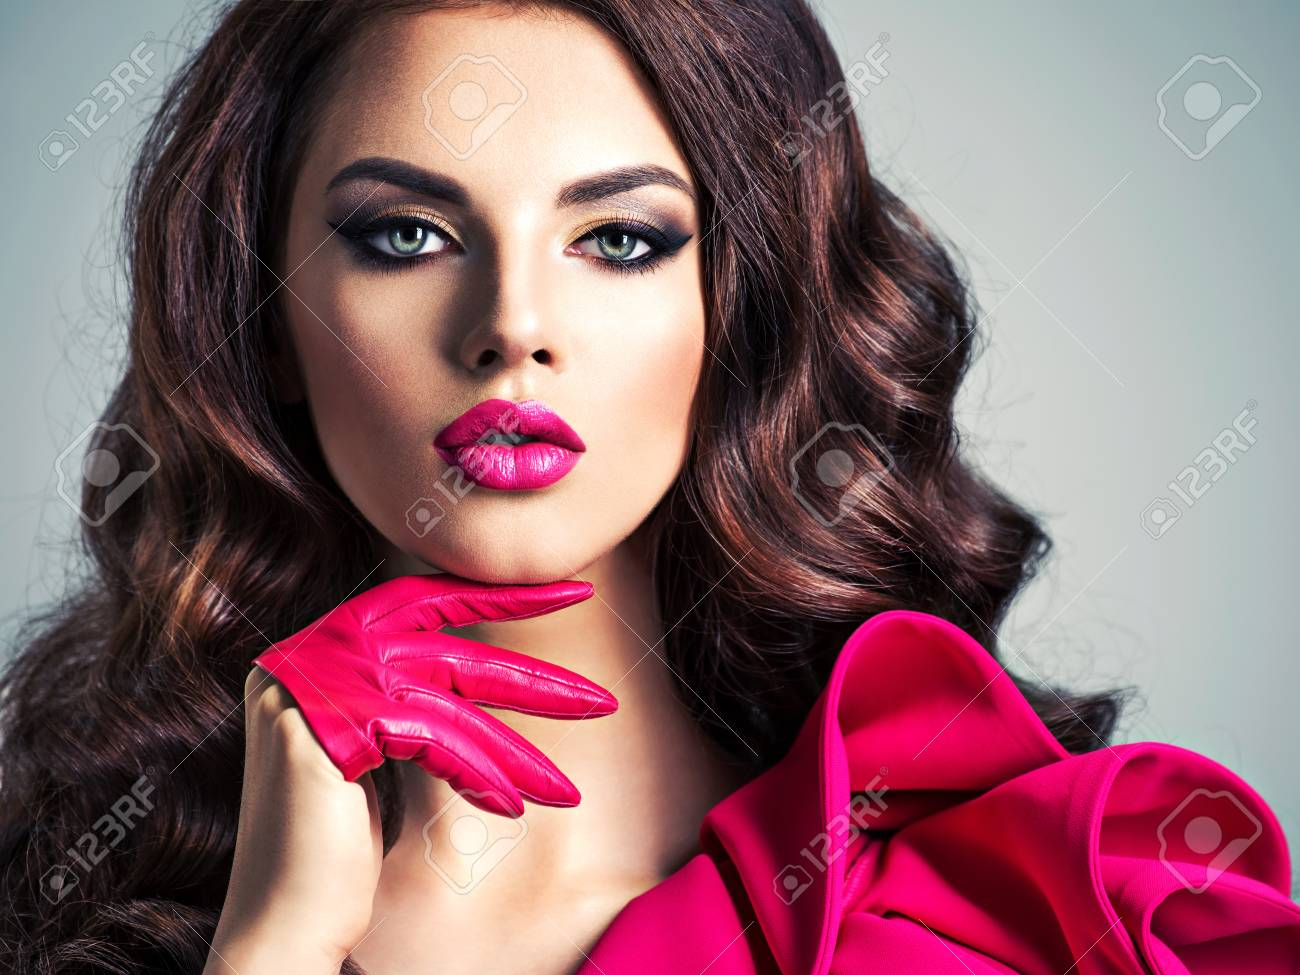 Fashionable Woman In A Red Dress With A Creative Eye Makeup